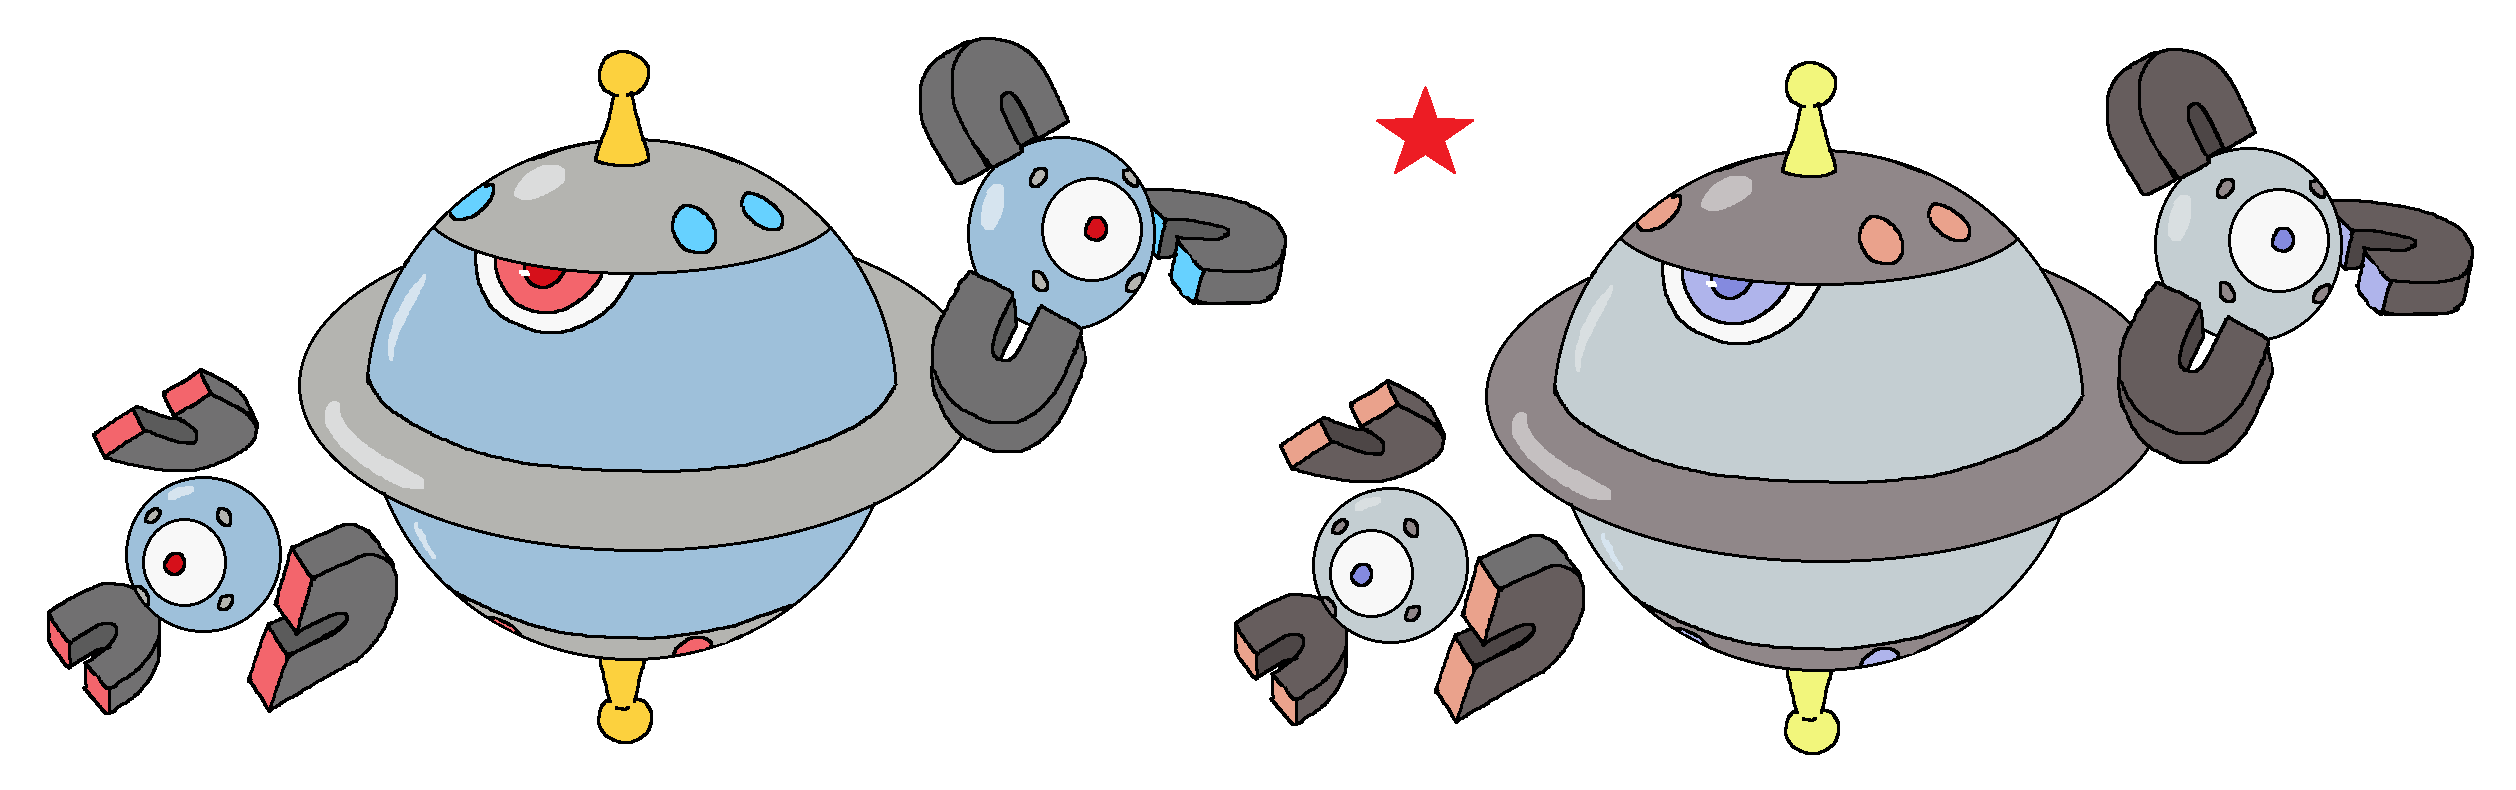 Magnezone Images